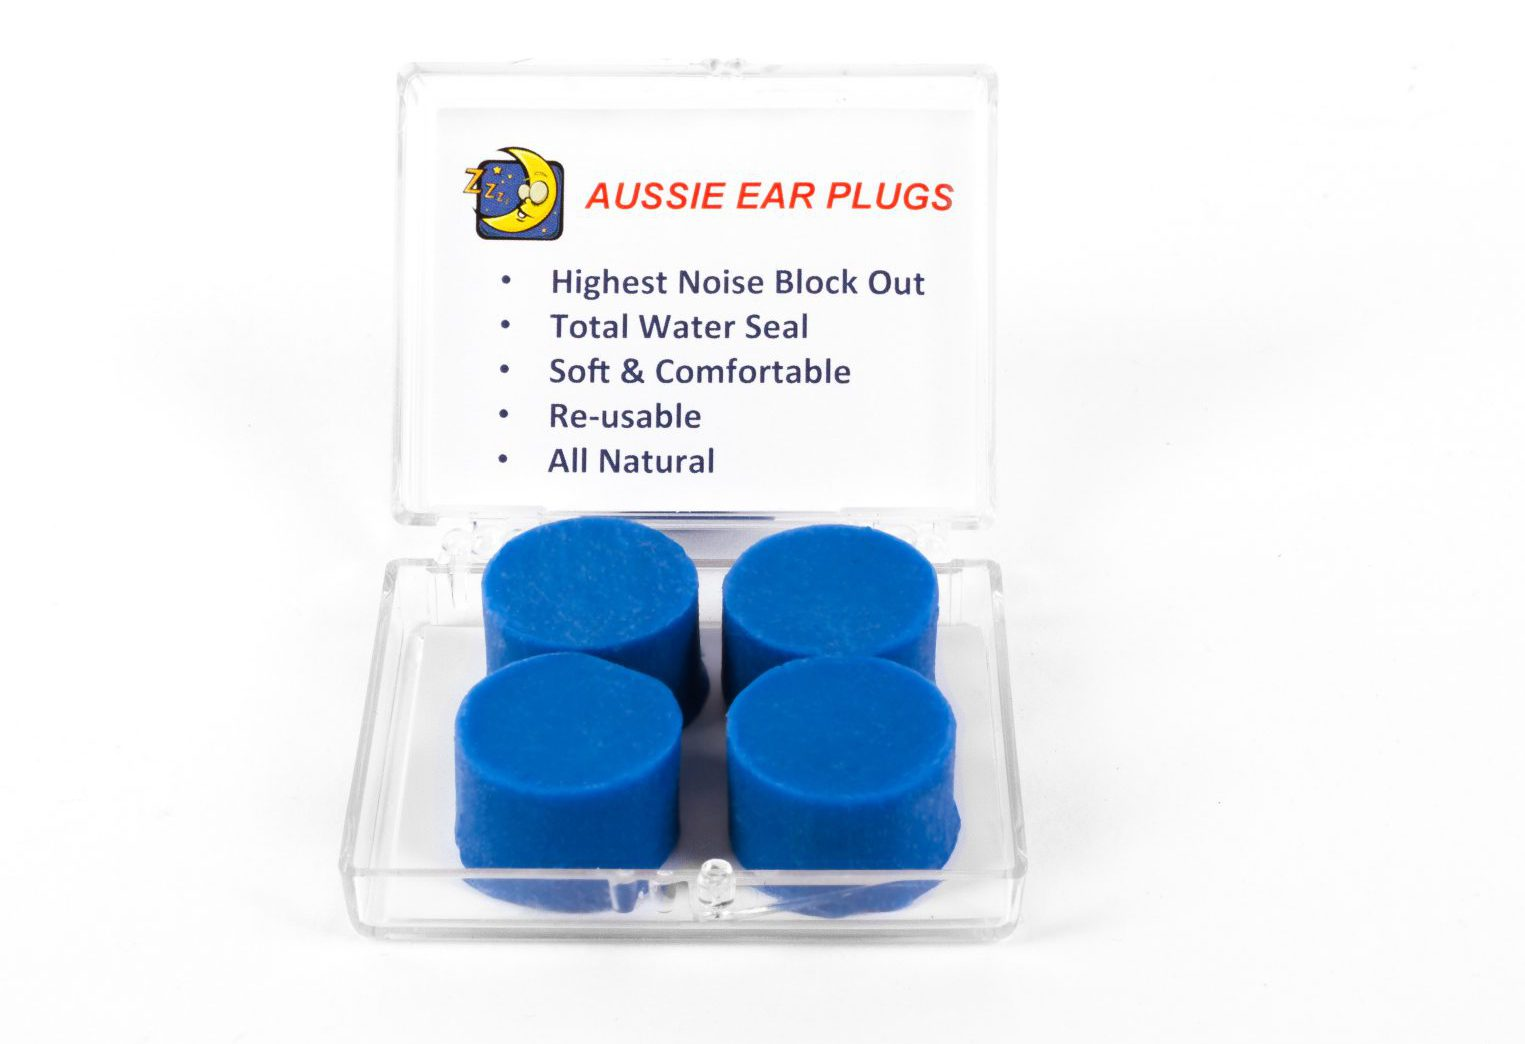 Travel Pack (2) Pairs – Total Noise Blocking Waterproof Earplugs